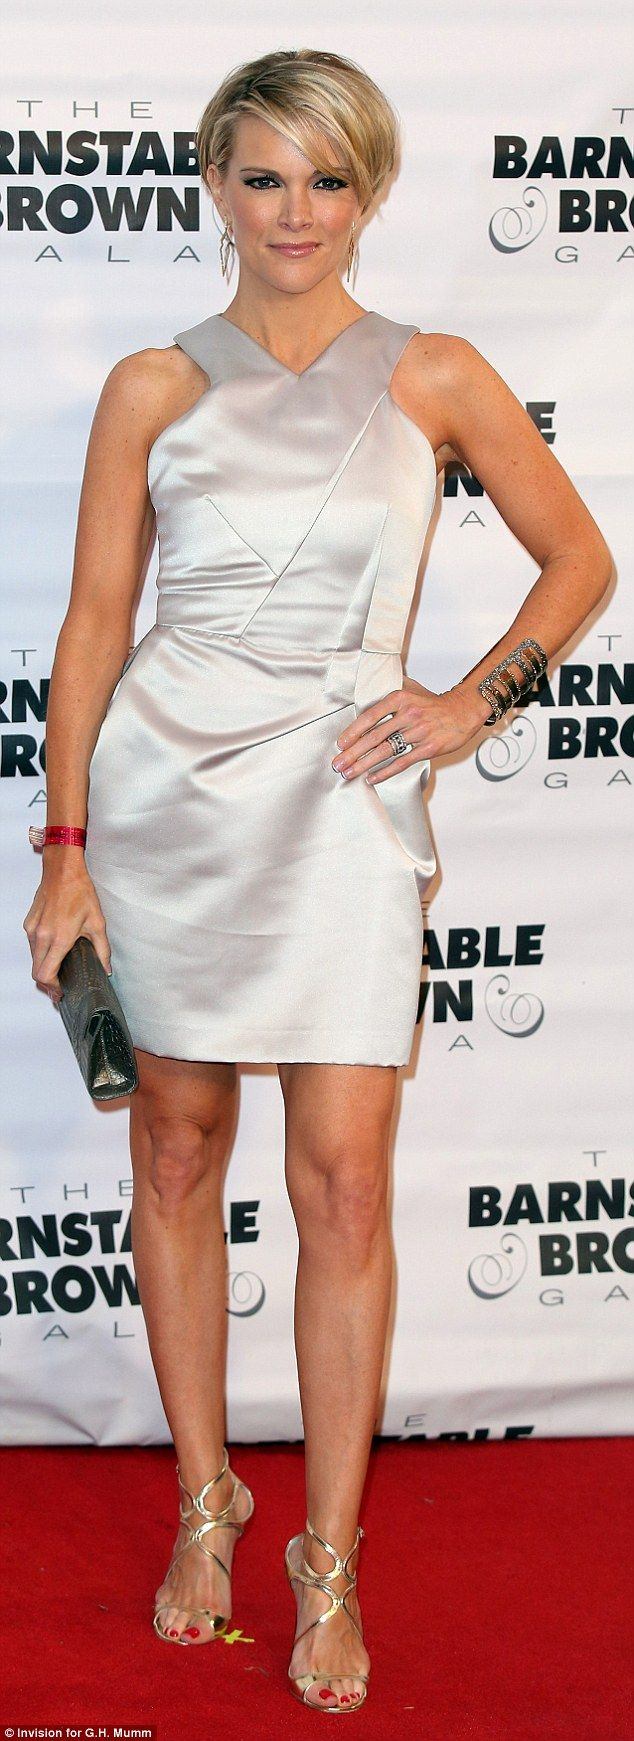 At Friday night's Barnstable Brown party Fox donned a shiny metallic outfit that highlight...